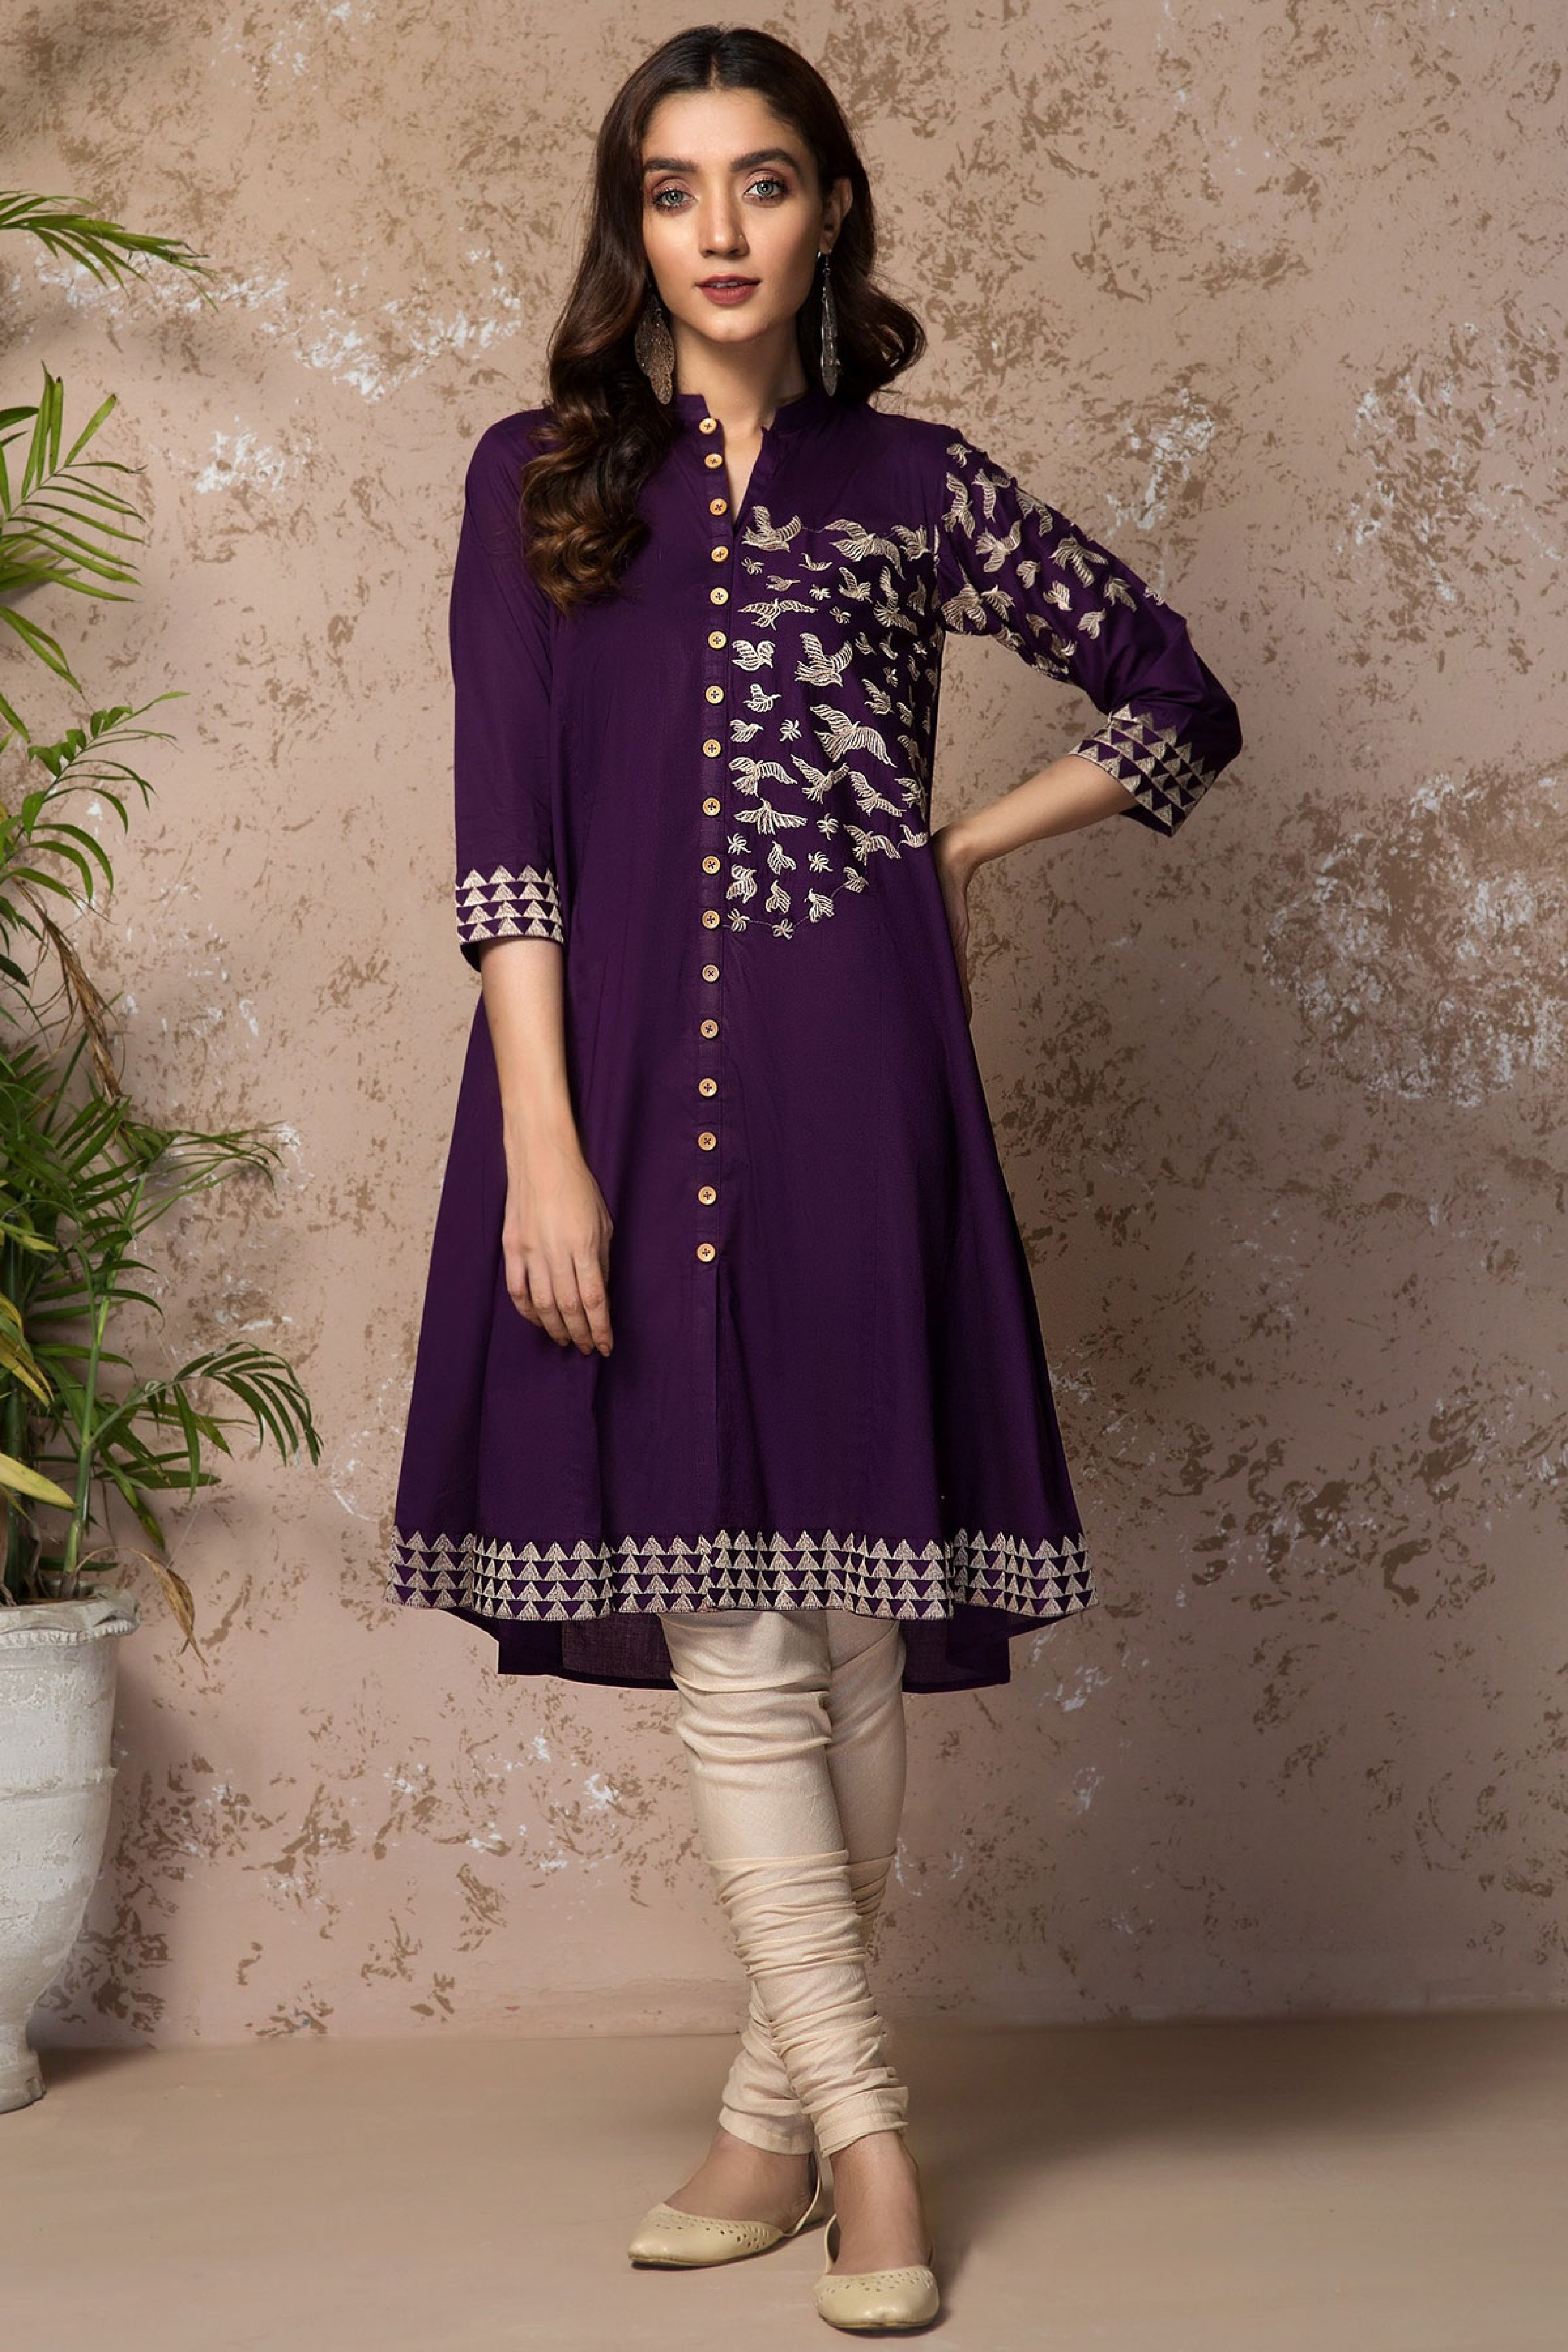 PURPLE BEATS (Embroidered Frock)